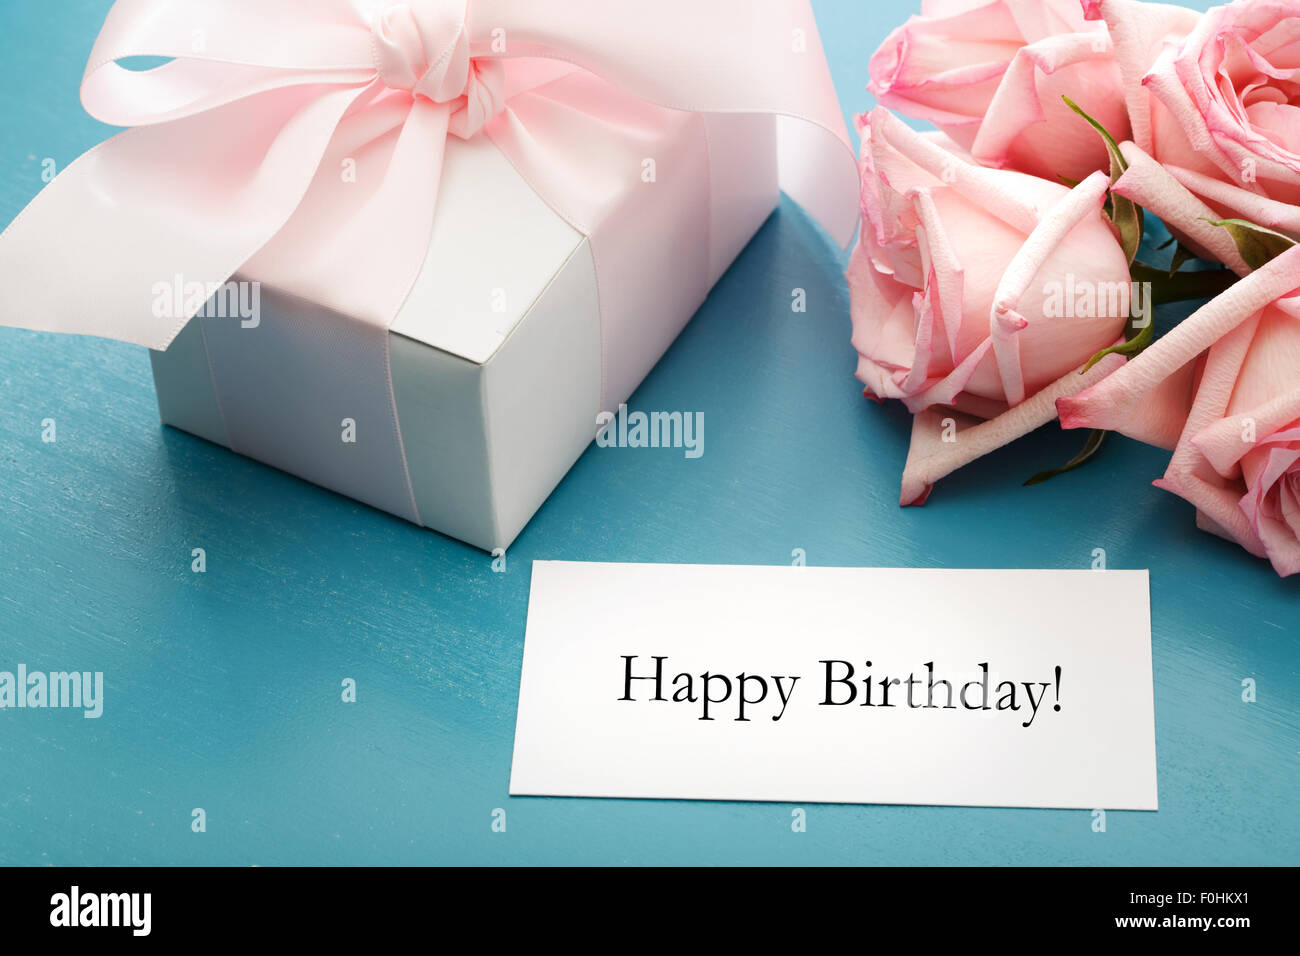 Happy birthday message card with gift box and pink roses stock photo happy birthday message card with gift box and pink roses bookmarktalkfo Image collections